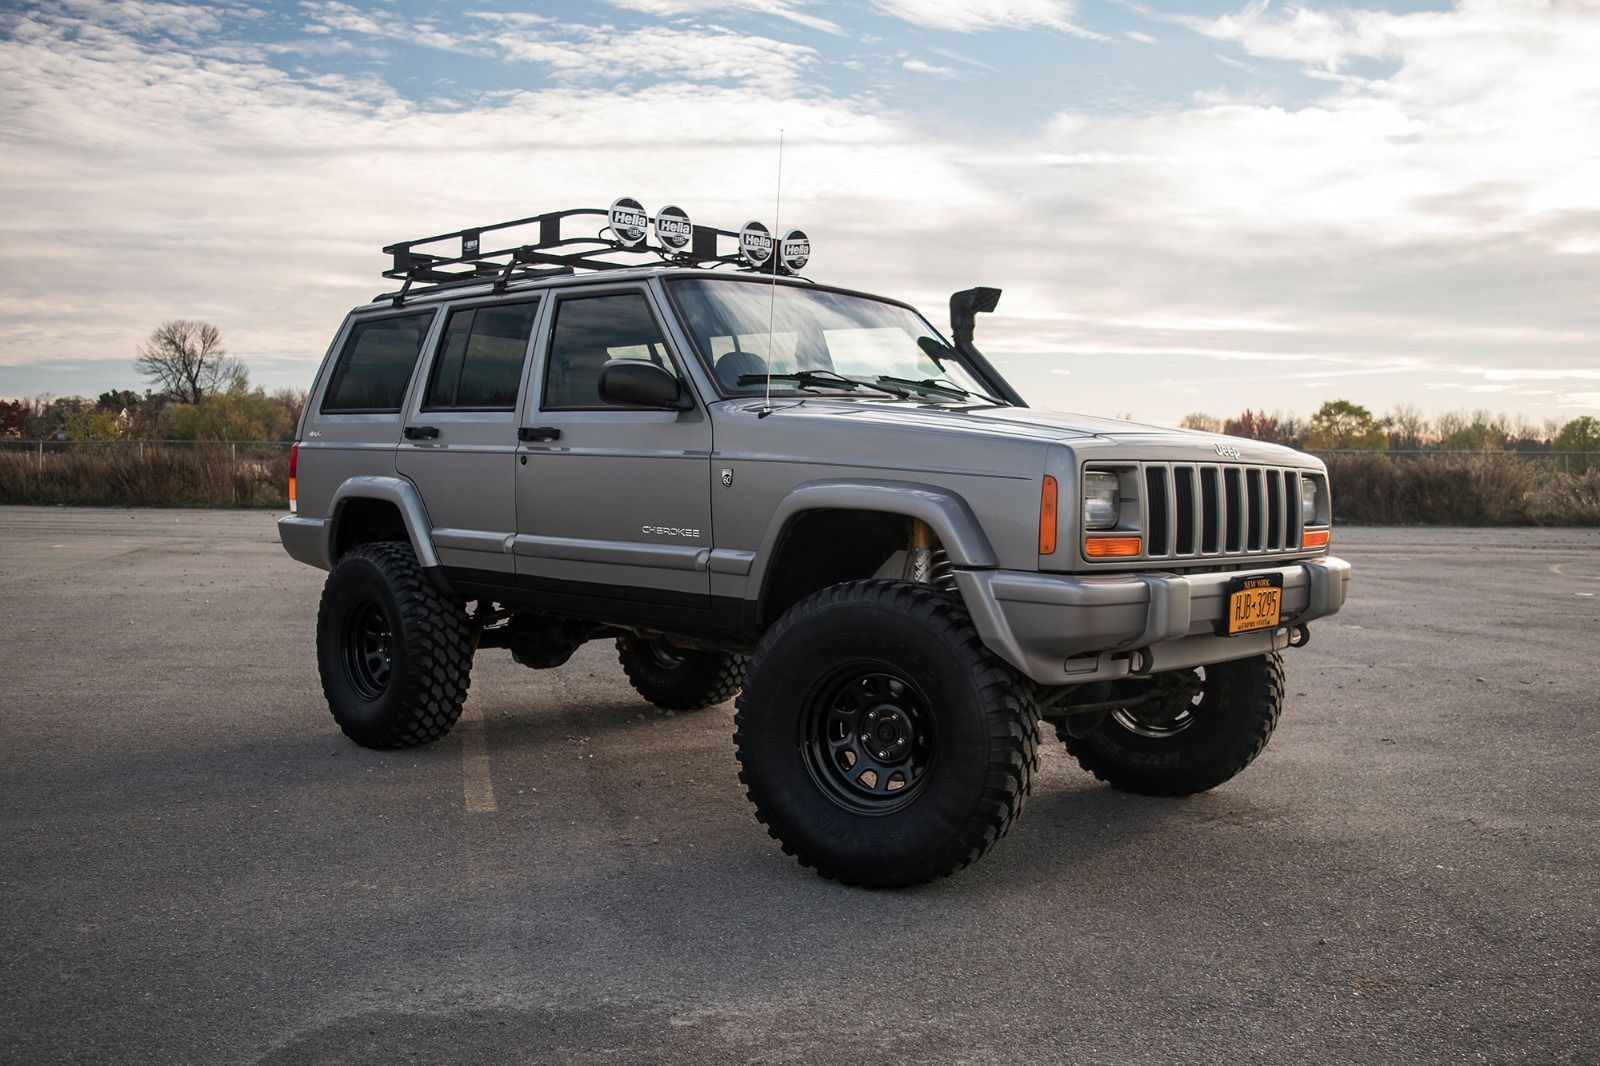 5 5 Re 33x12 5r15 Xj Lift Tire Setup Thread Page 63 Jeep Cherokee Forum Jeep Jeep Xj Jeep Cherokee